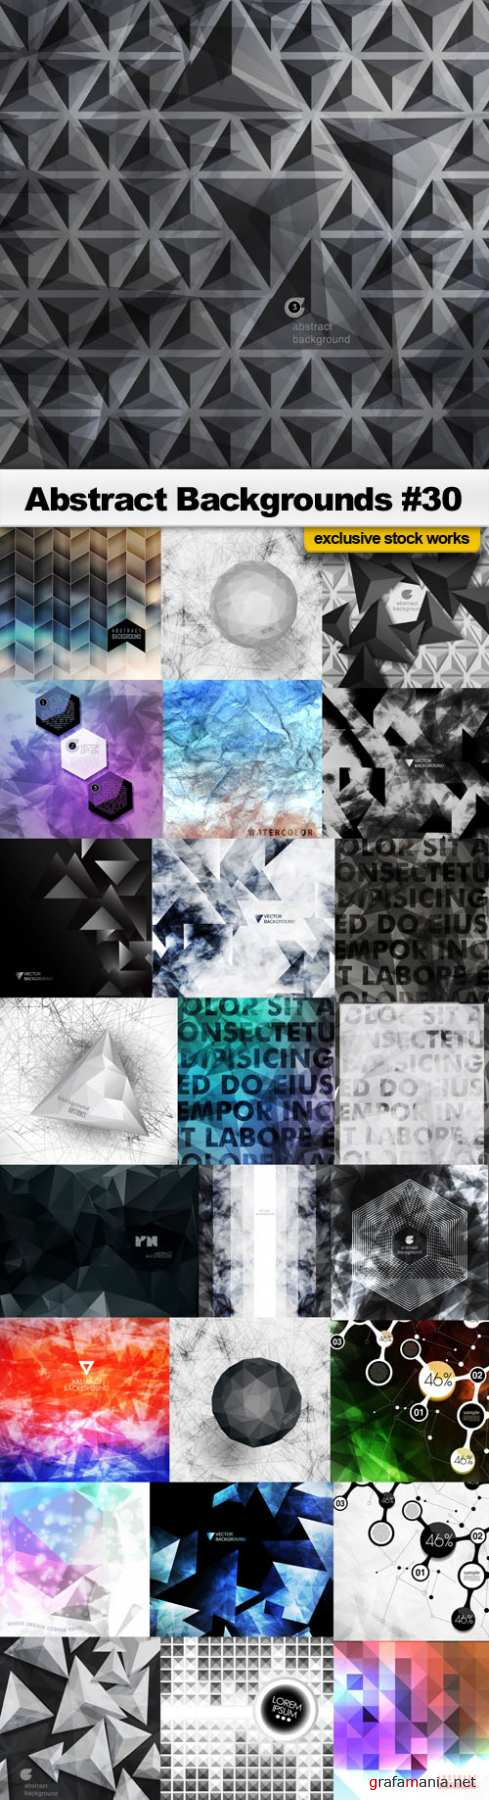 Abstract Backgrounds #30 - 25 EPS